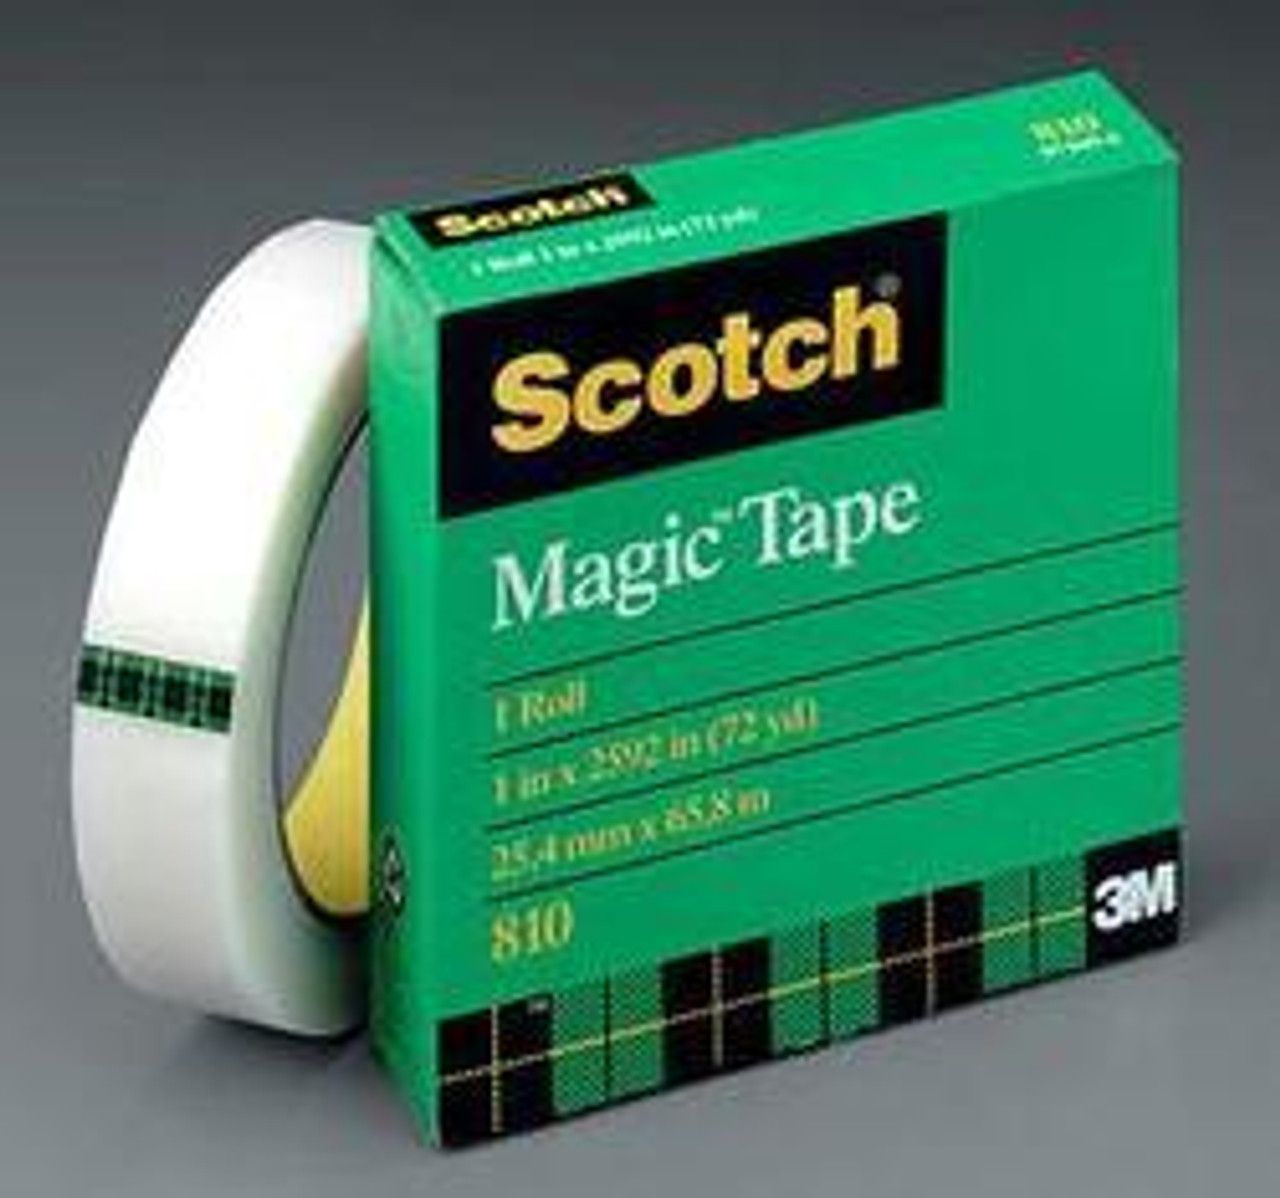 Magic Tape, 1/2 x 2592, on 3 in Core, Scotch, 3M 810